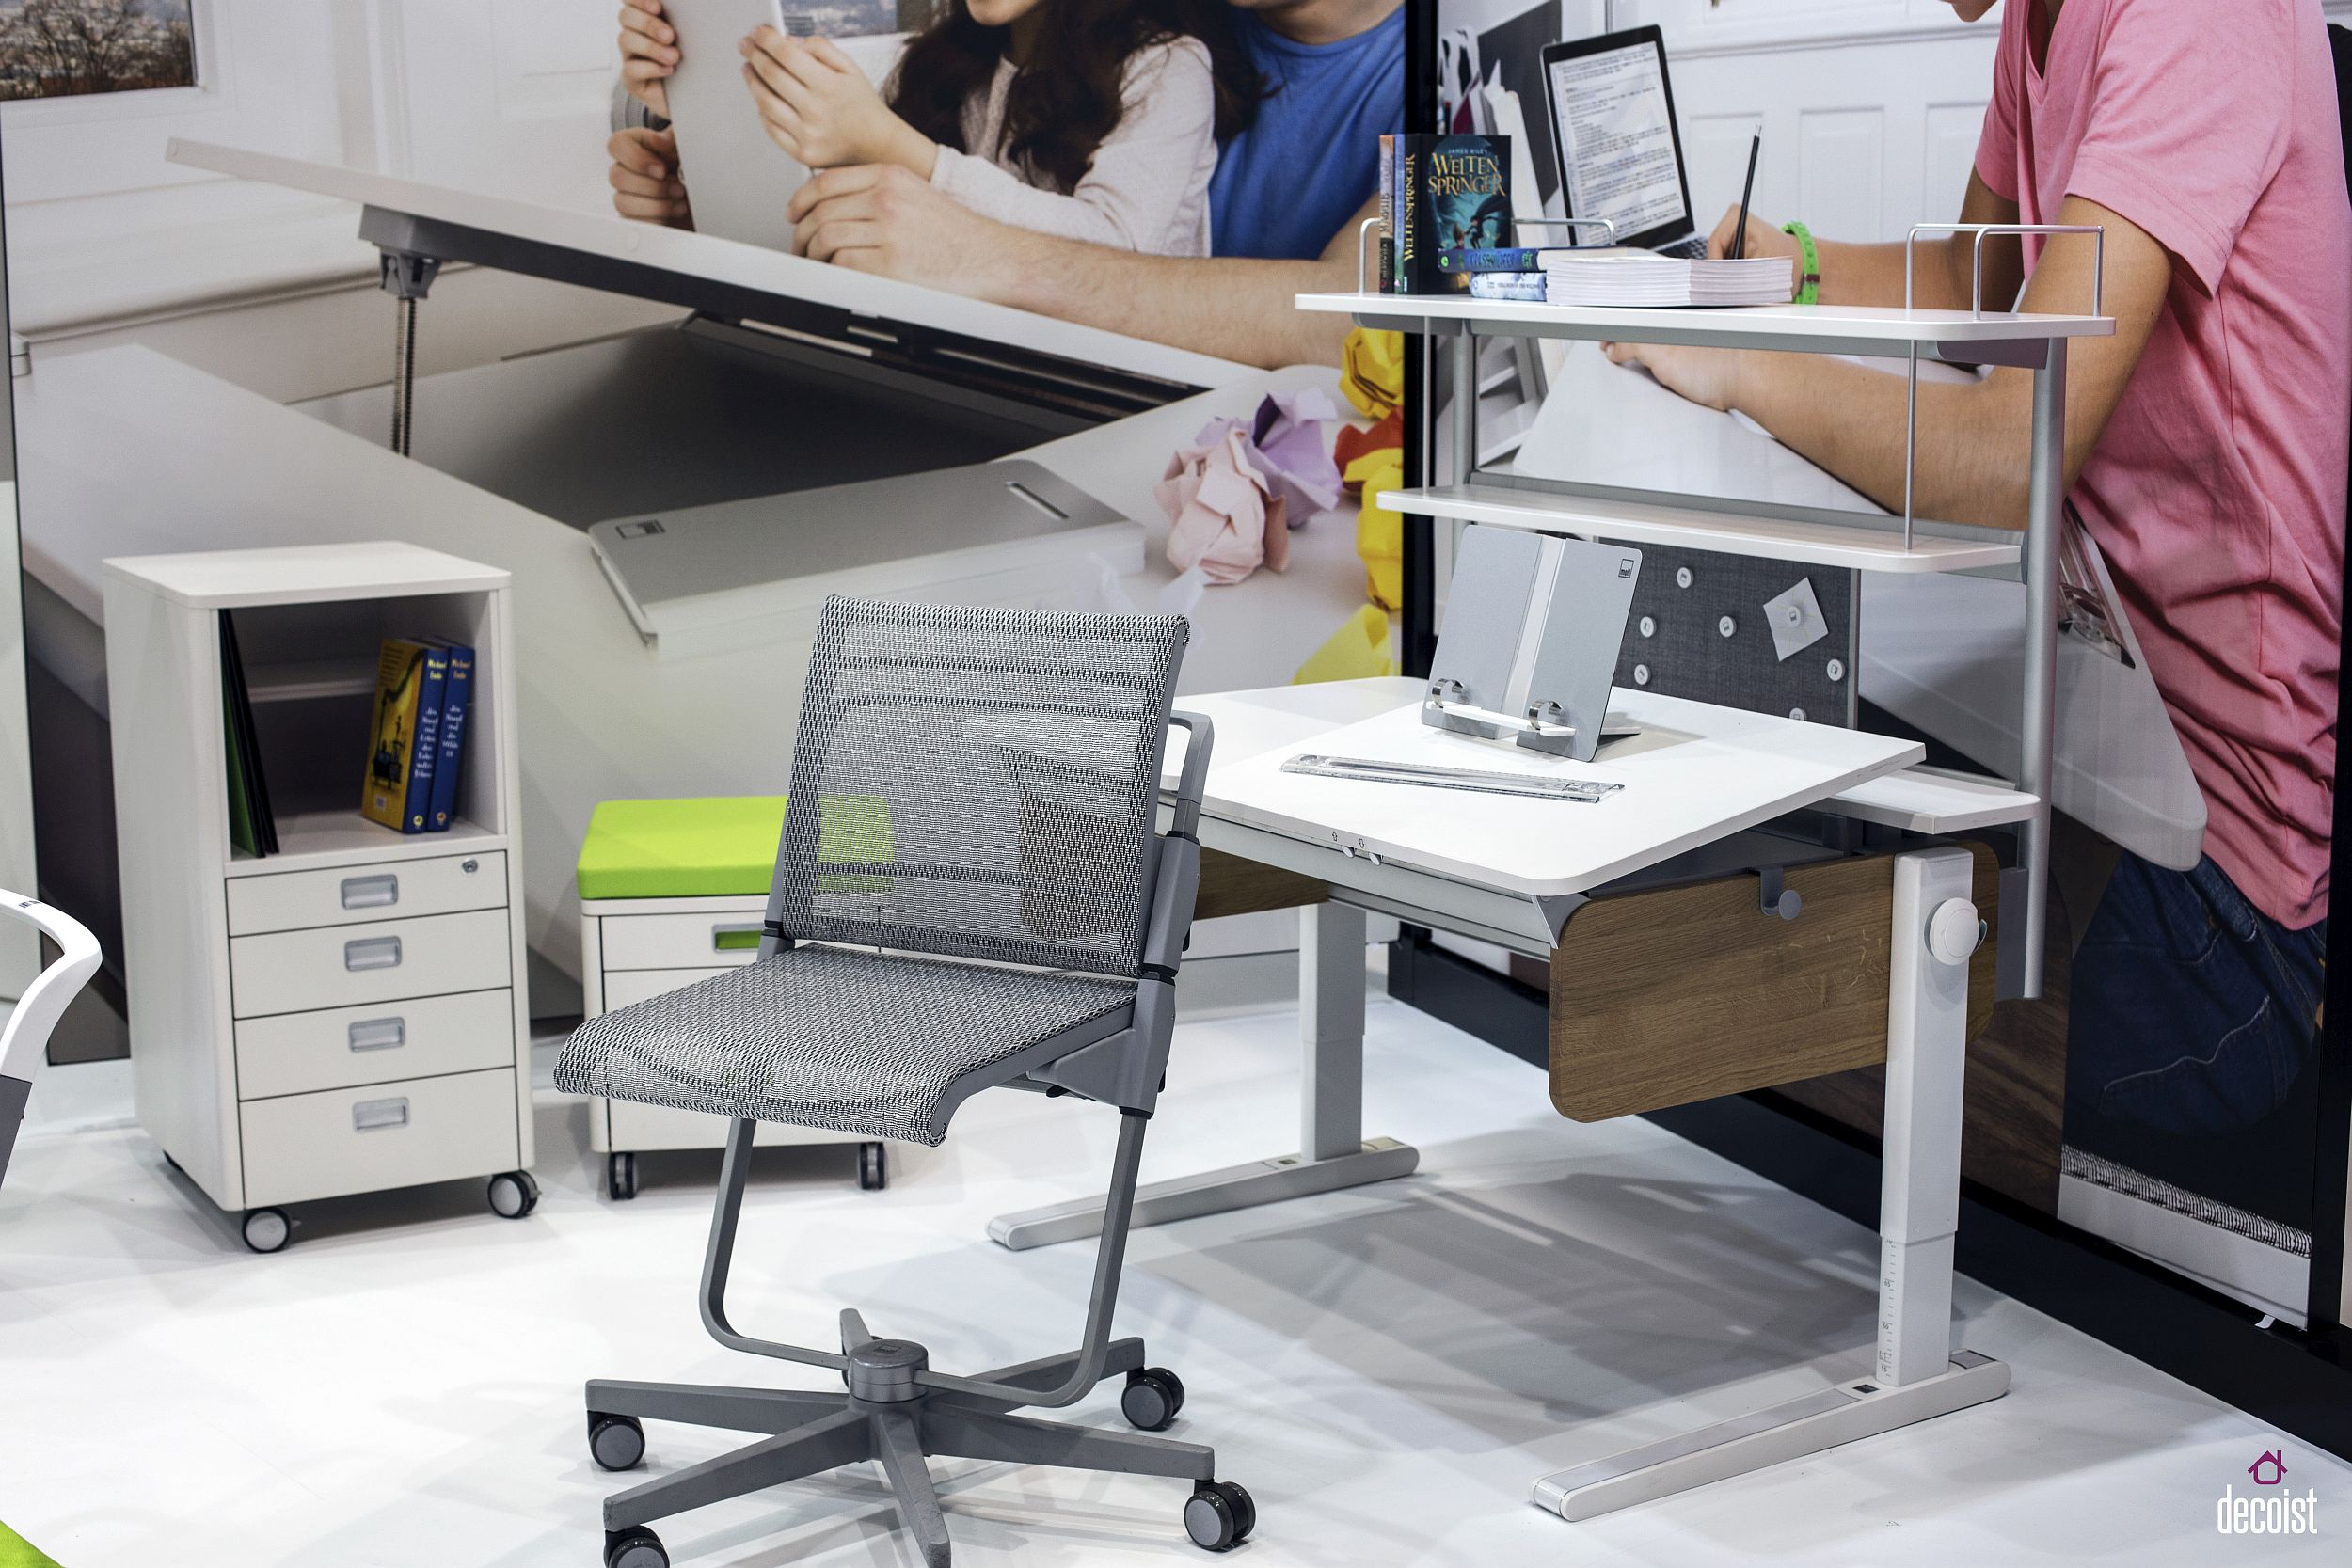 Smart-desks-are-great-for-both-kids-and-adults-alike